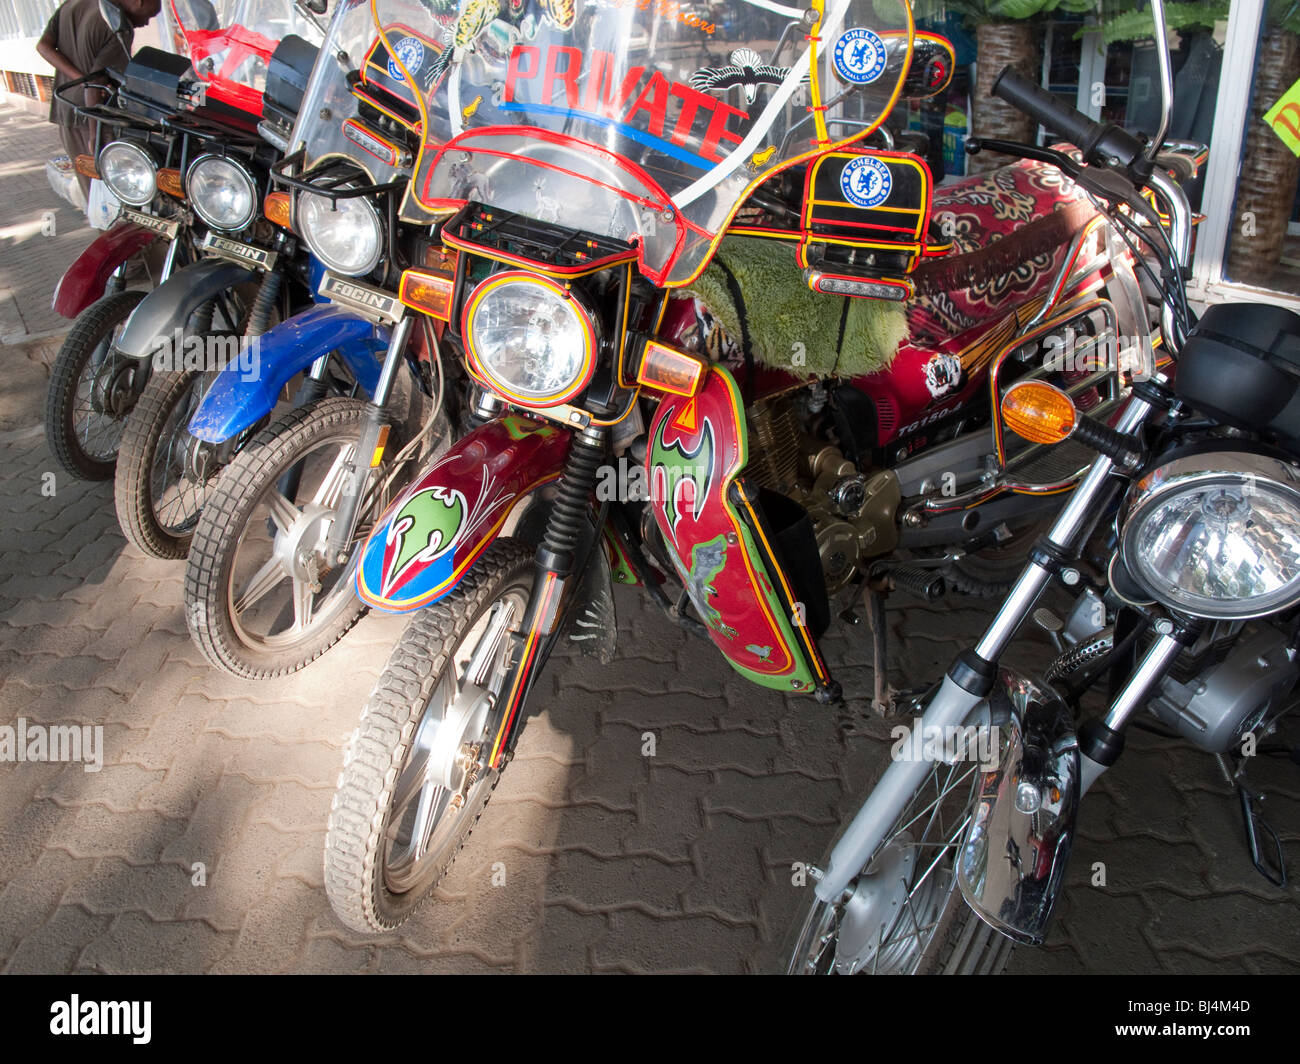 Decorated motorbikes parked in small town Kenya East Africa Stock Photo